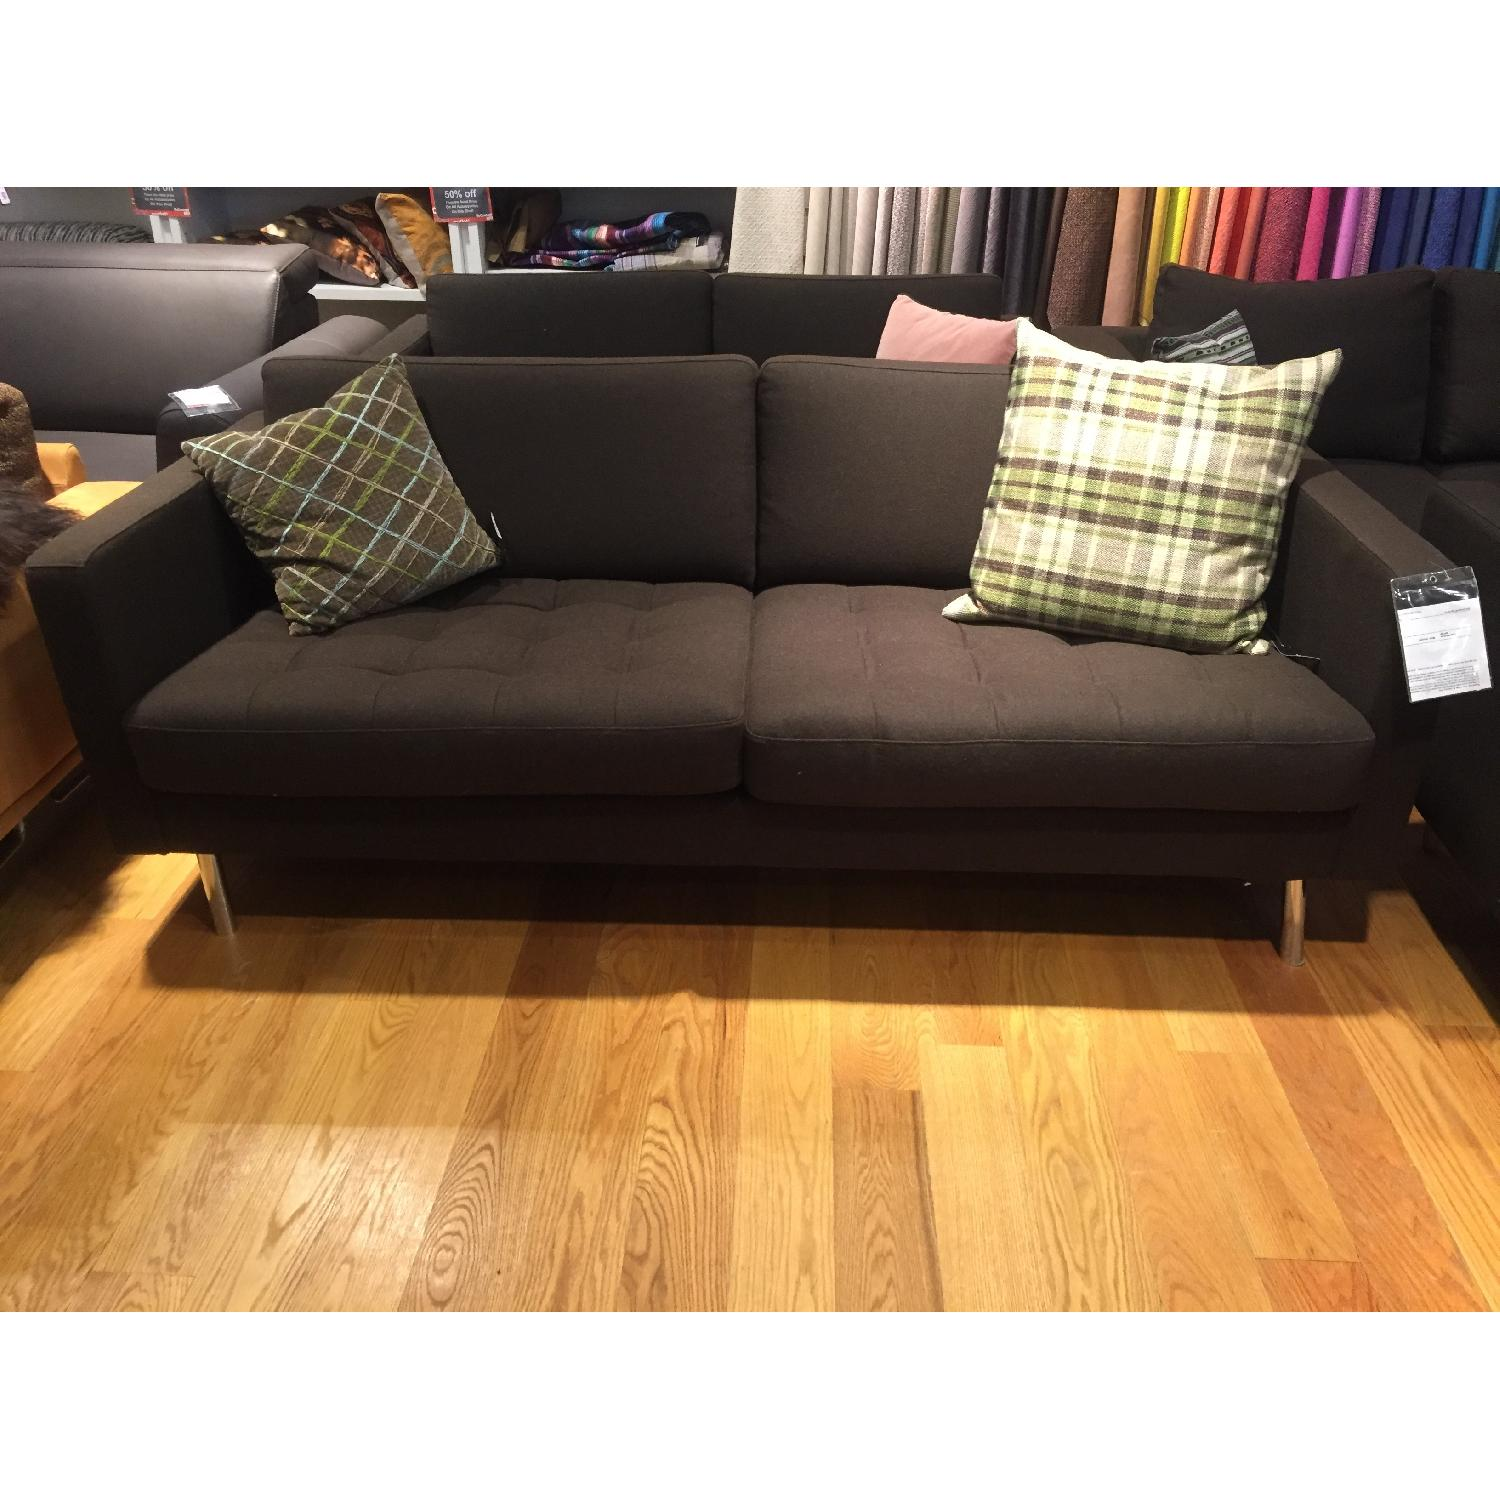 BoConcept Olympia Sofa in Chocolate Lux - image-1